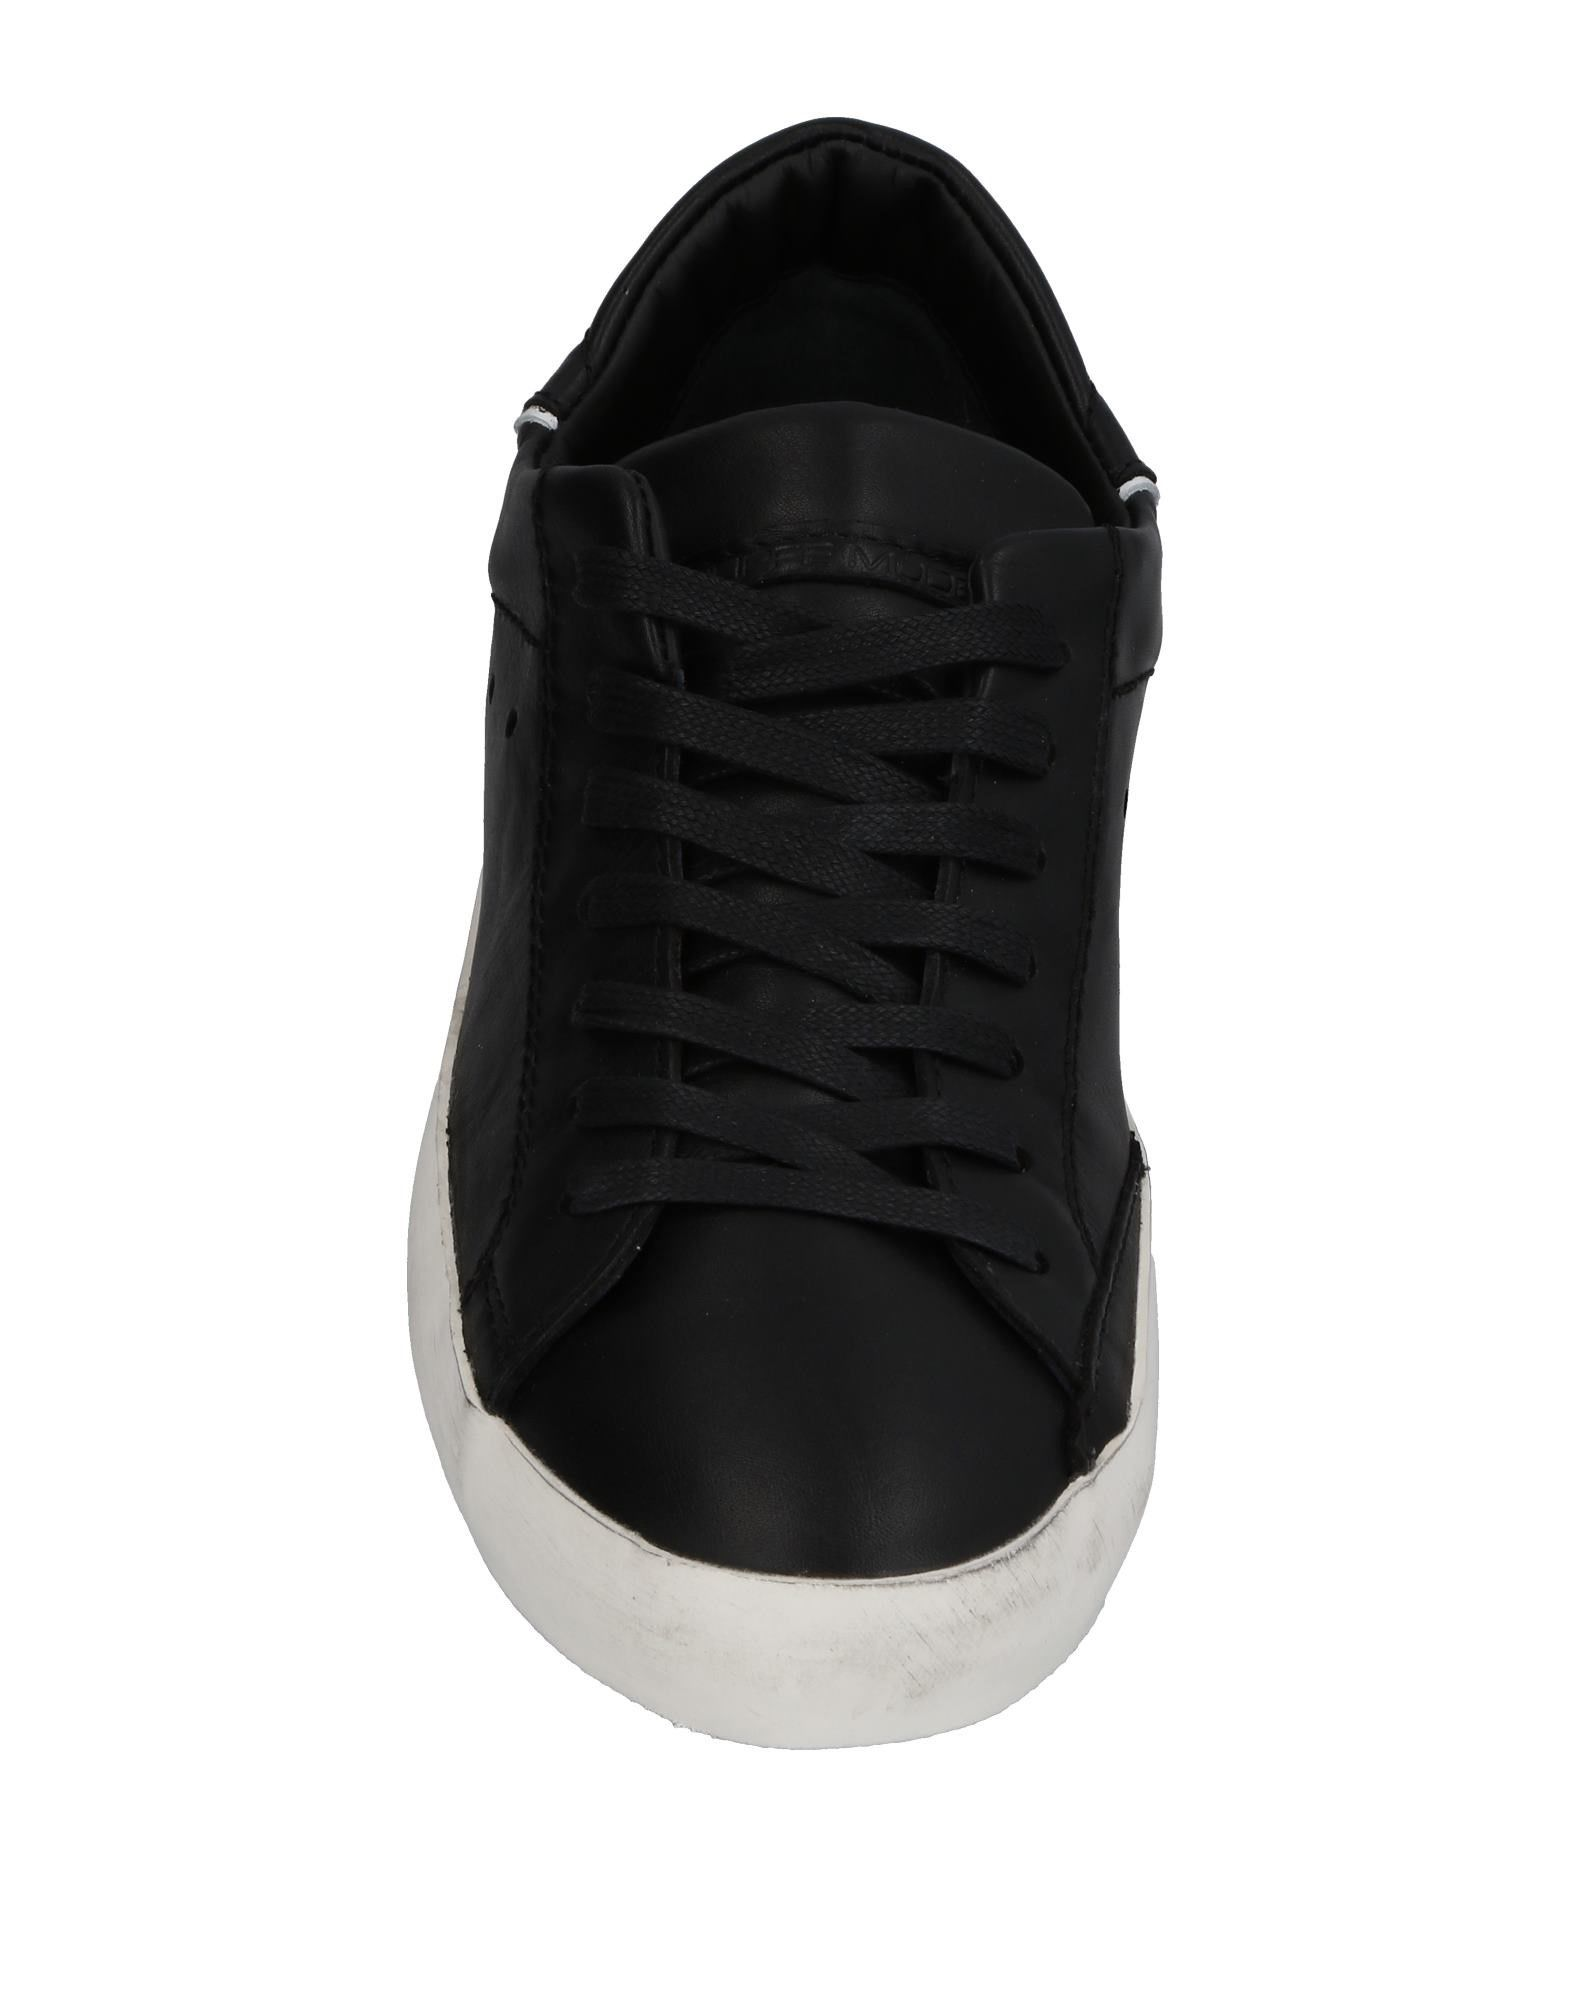 Sneakers Uomo Philippe Model Uomo Sneakers - 11462114IS 388d66